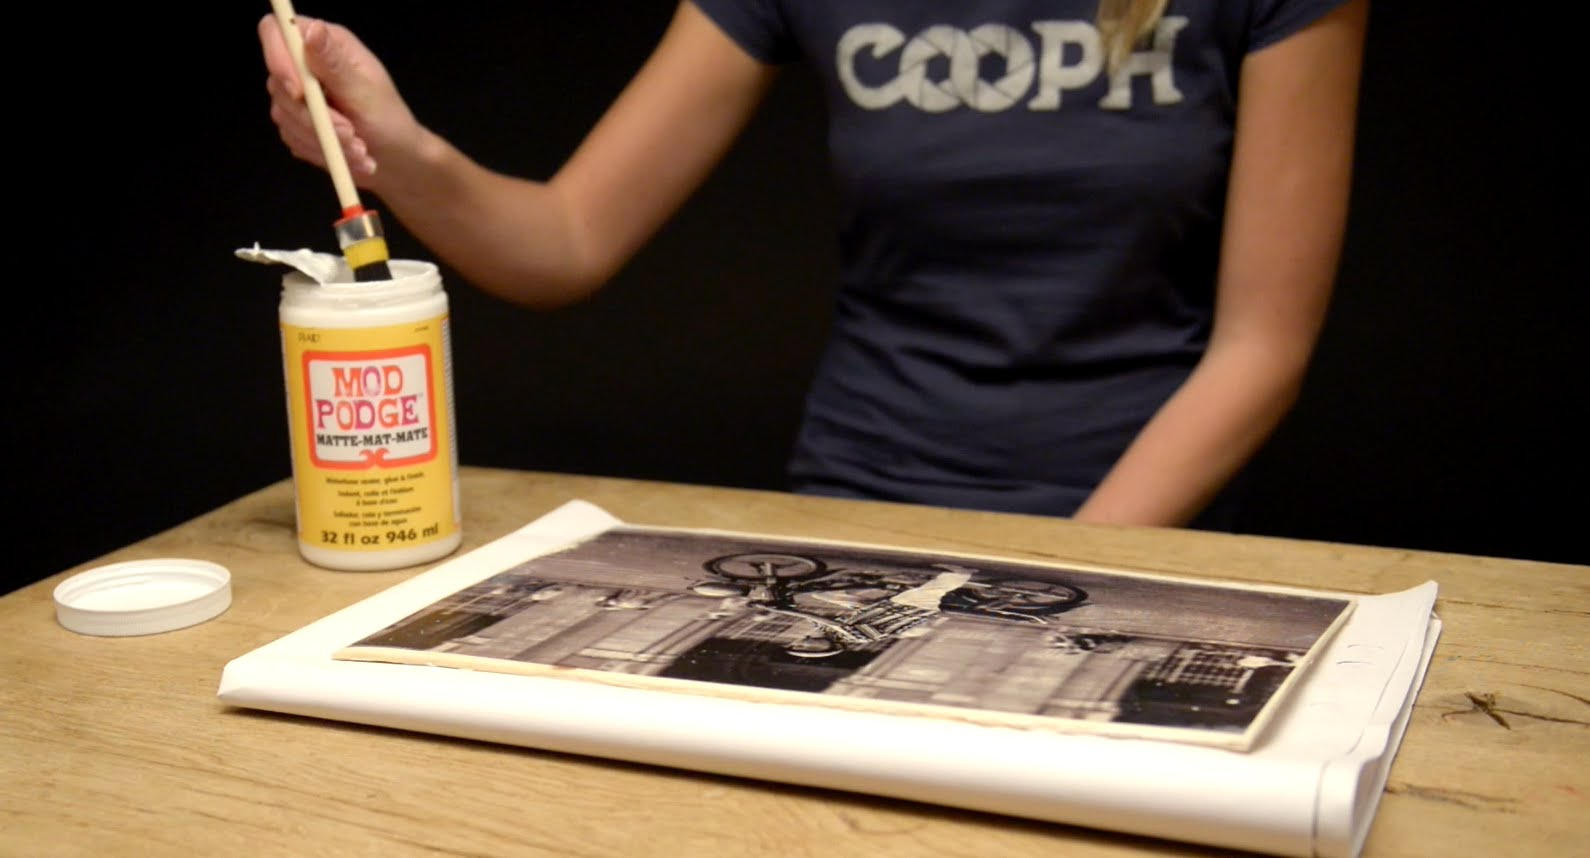 Best Last Minute Wedding Gifts: 6 DIY Photography Gifts That Cost Next-to-Nothing